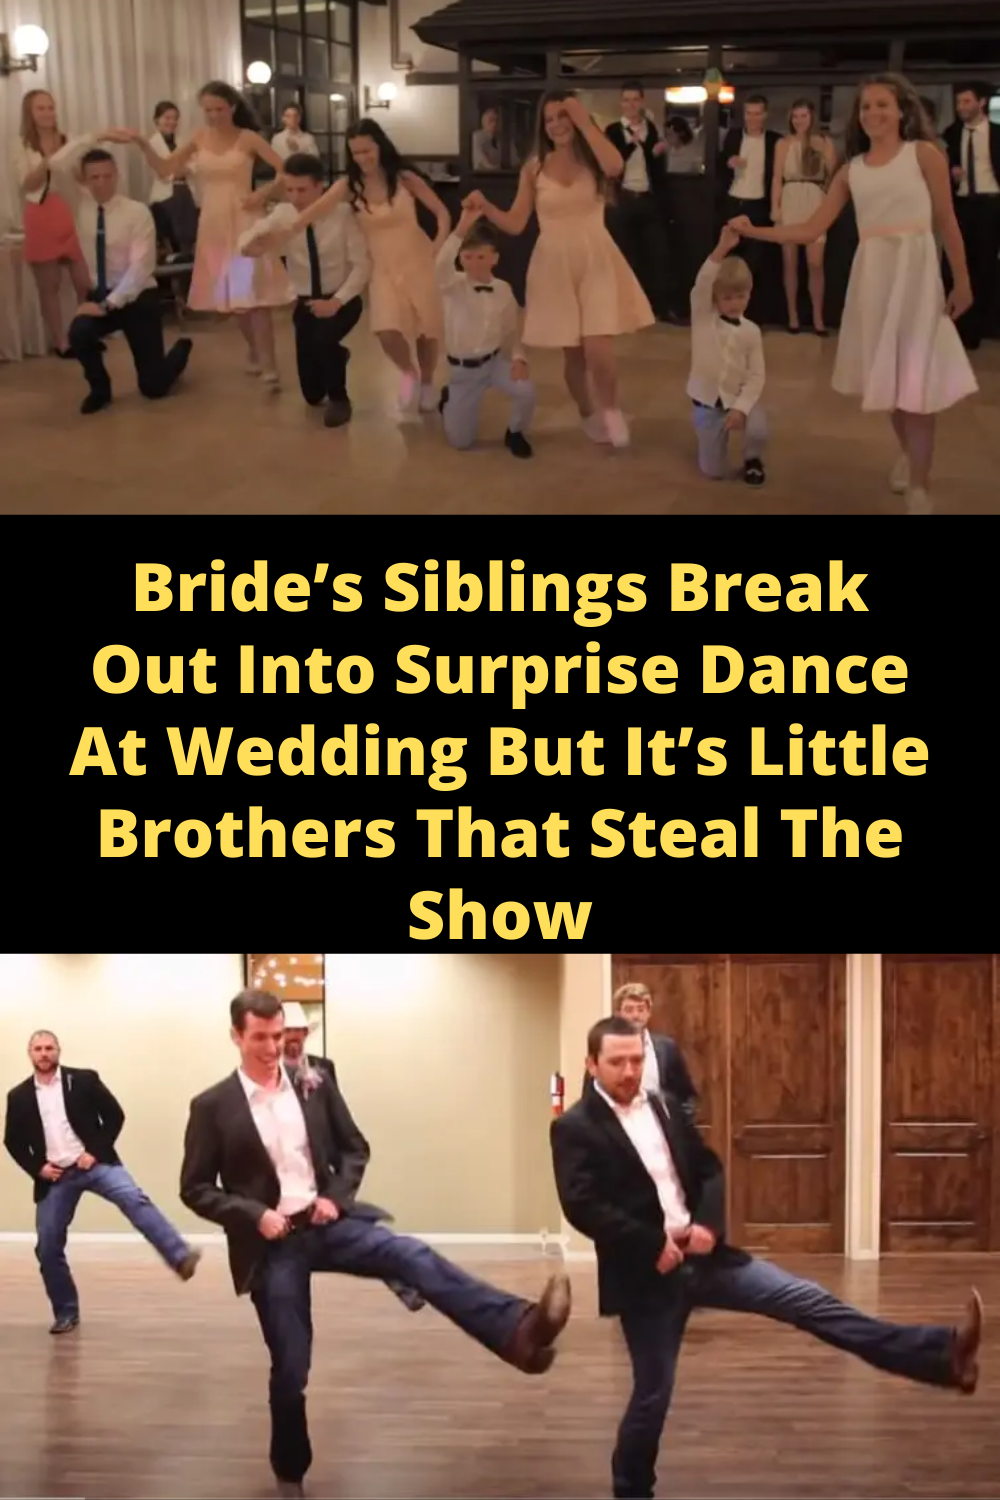 Bride S Siblings Break Out Into Surprise Dance At Wedding But It S Little Brothers That Steal The Show Surprise Dance Little Brothers Funny Romantic Quotes